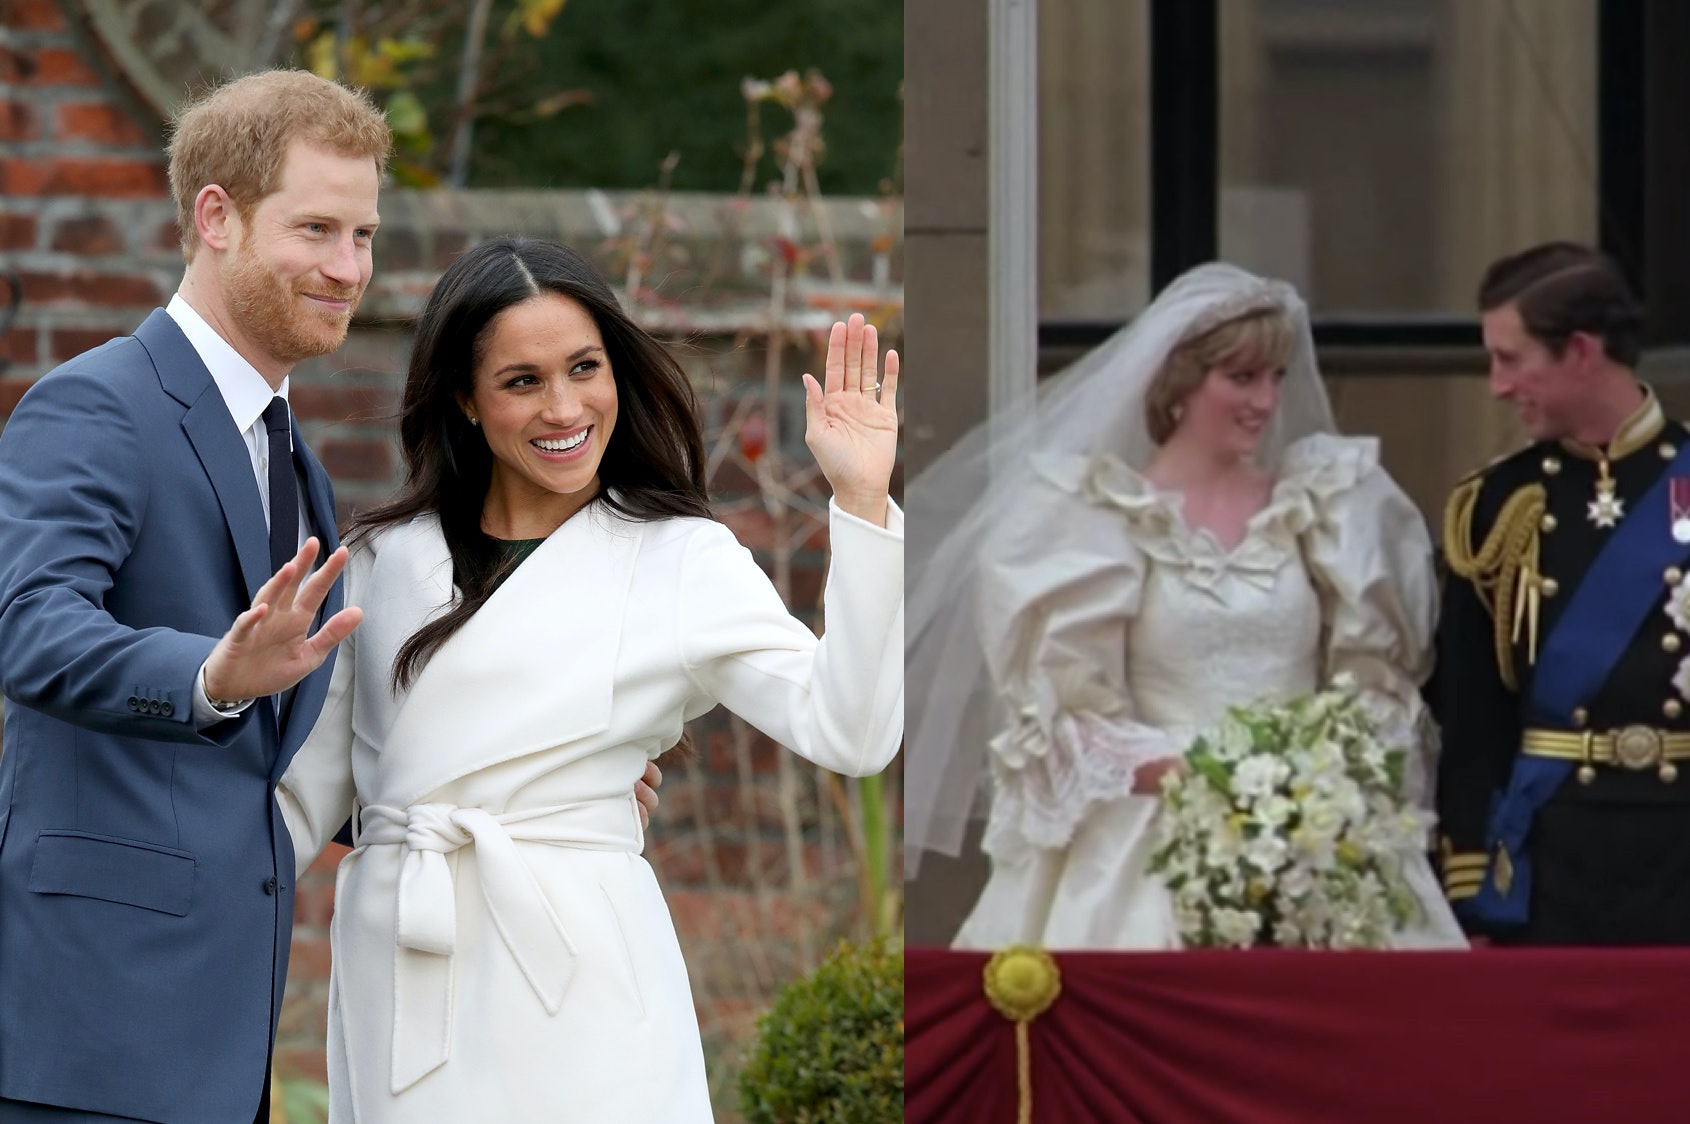 Watch The Royal Wedding Menu Is Healthier Than Youd Expect video